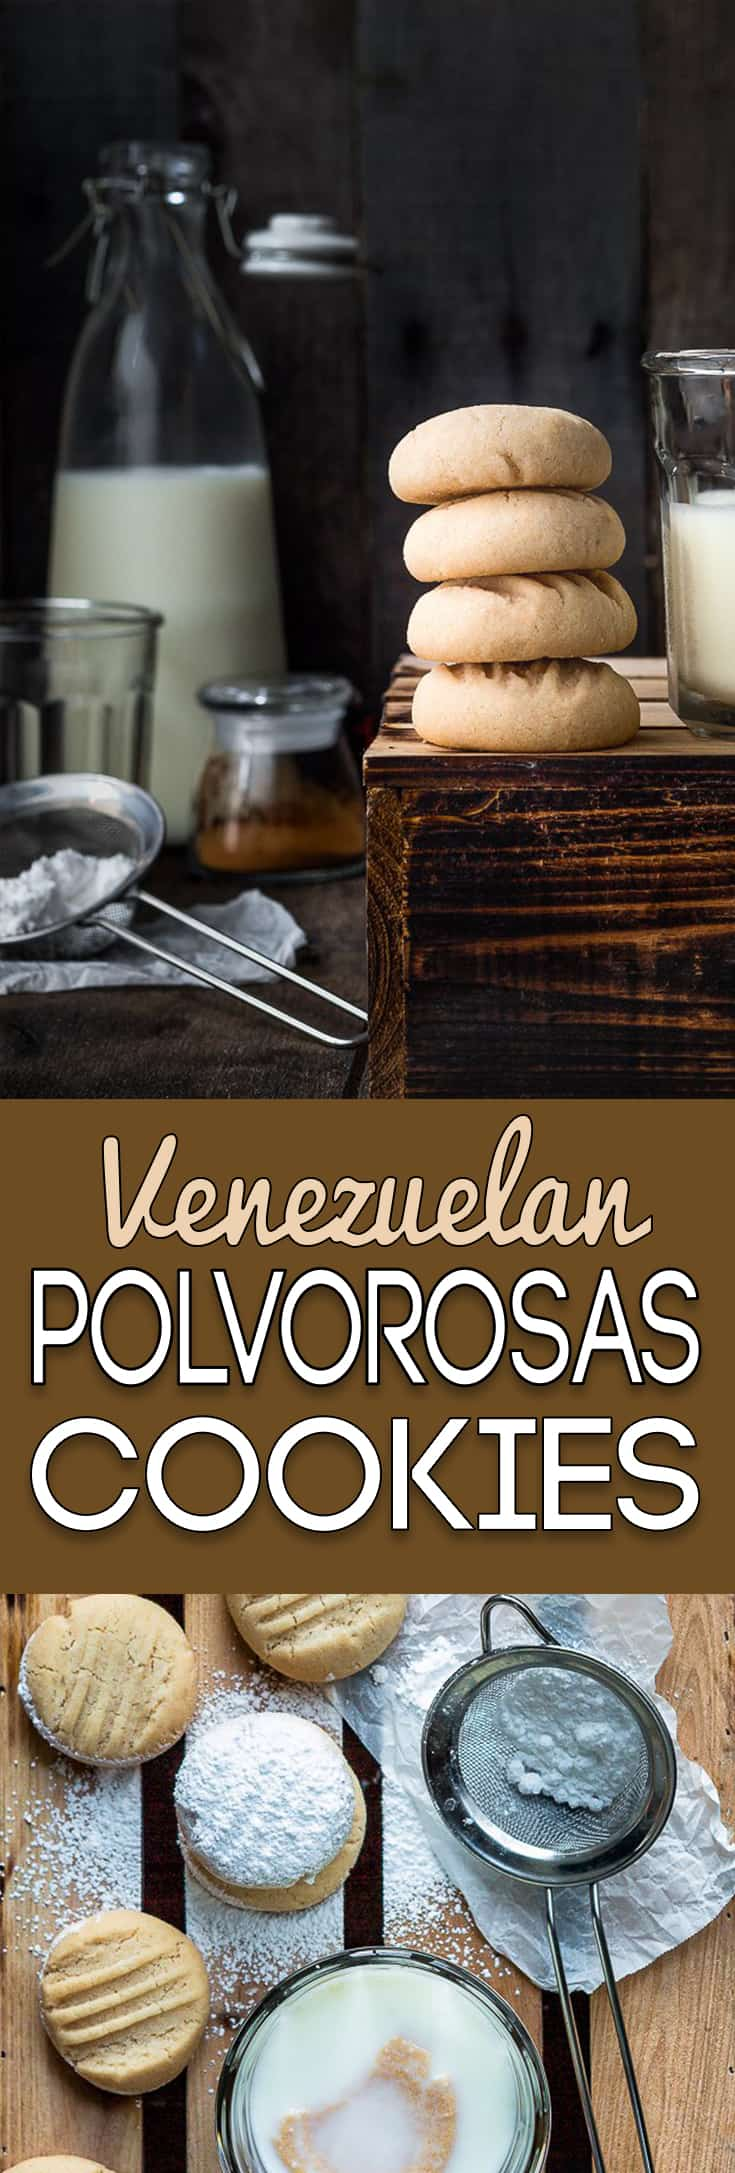 These classic Venezuelan Polvorosas Cookies are always a big hit. Easy to make, easier to eat! They're absolutely the BEST! http://mommyshomecooking.com